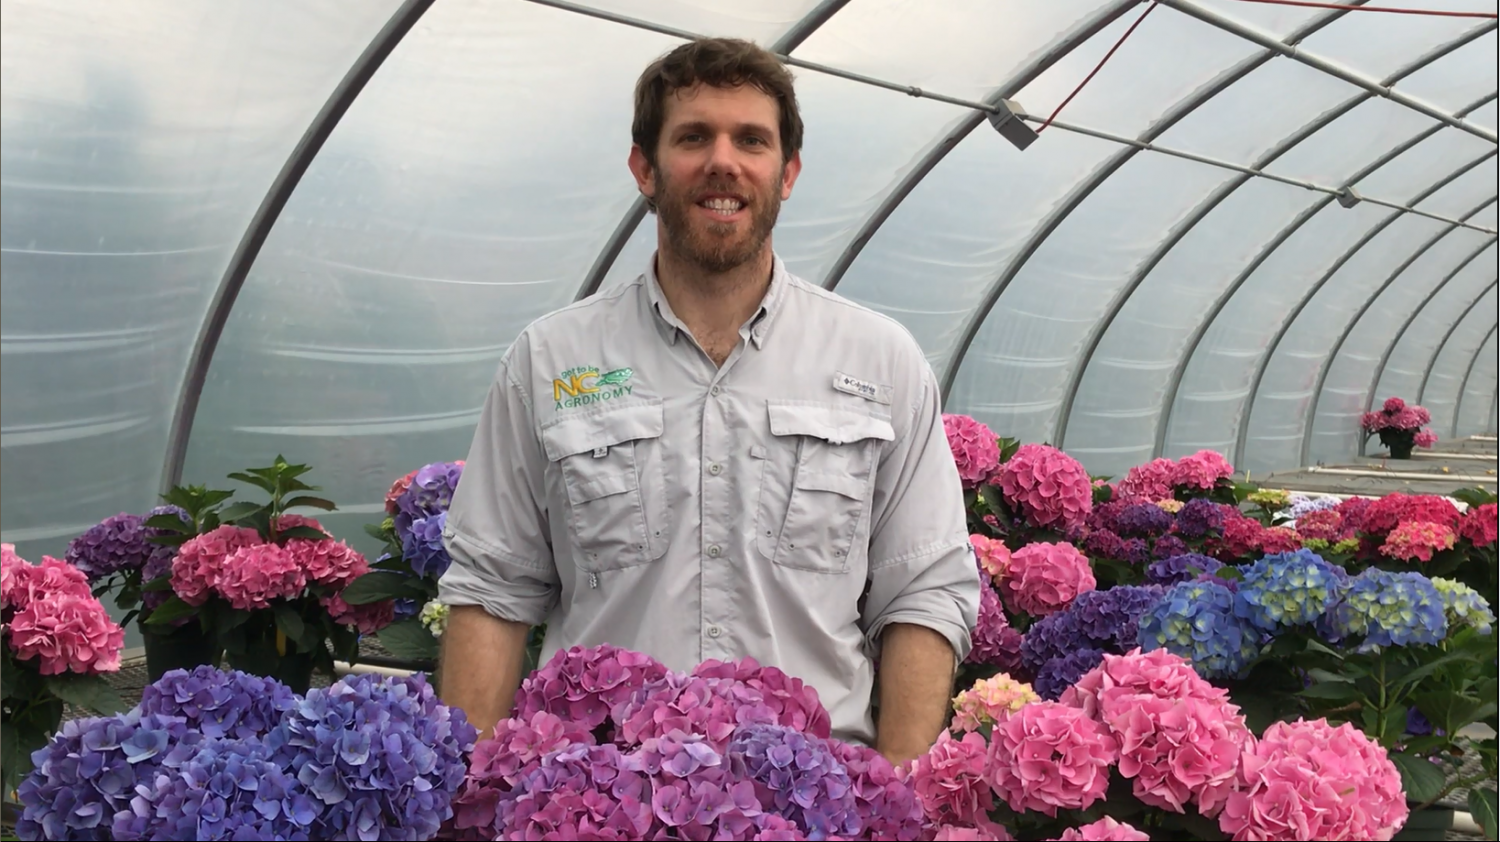 Man standing in a greenhouse filled with pink, purple, and blue hydrangeas